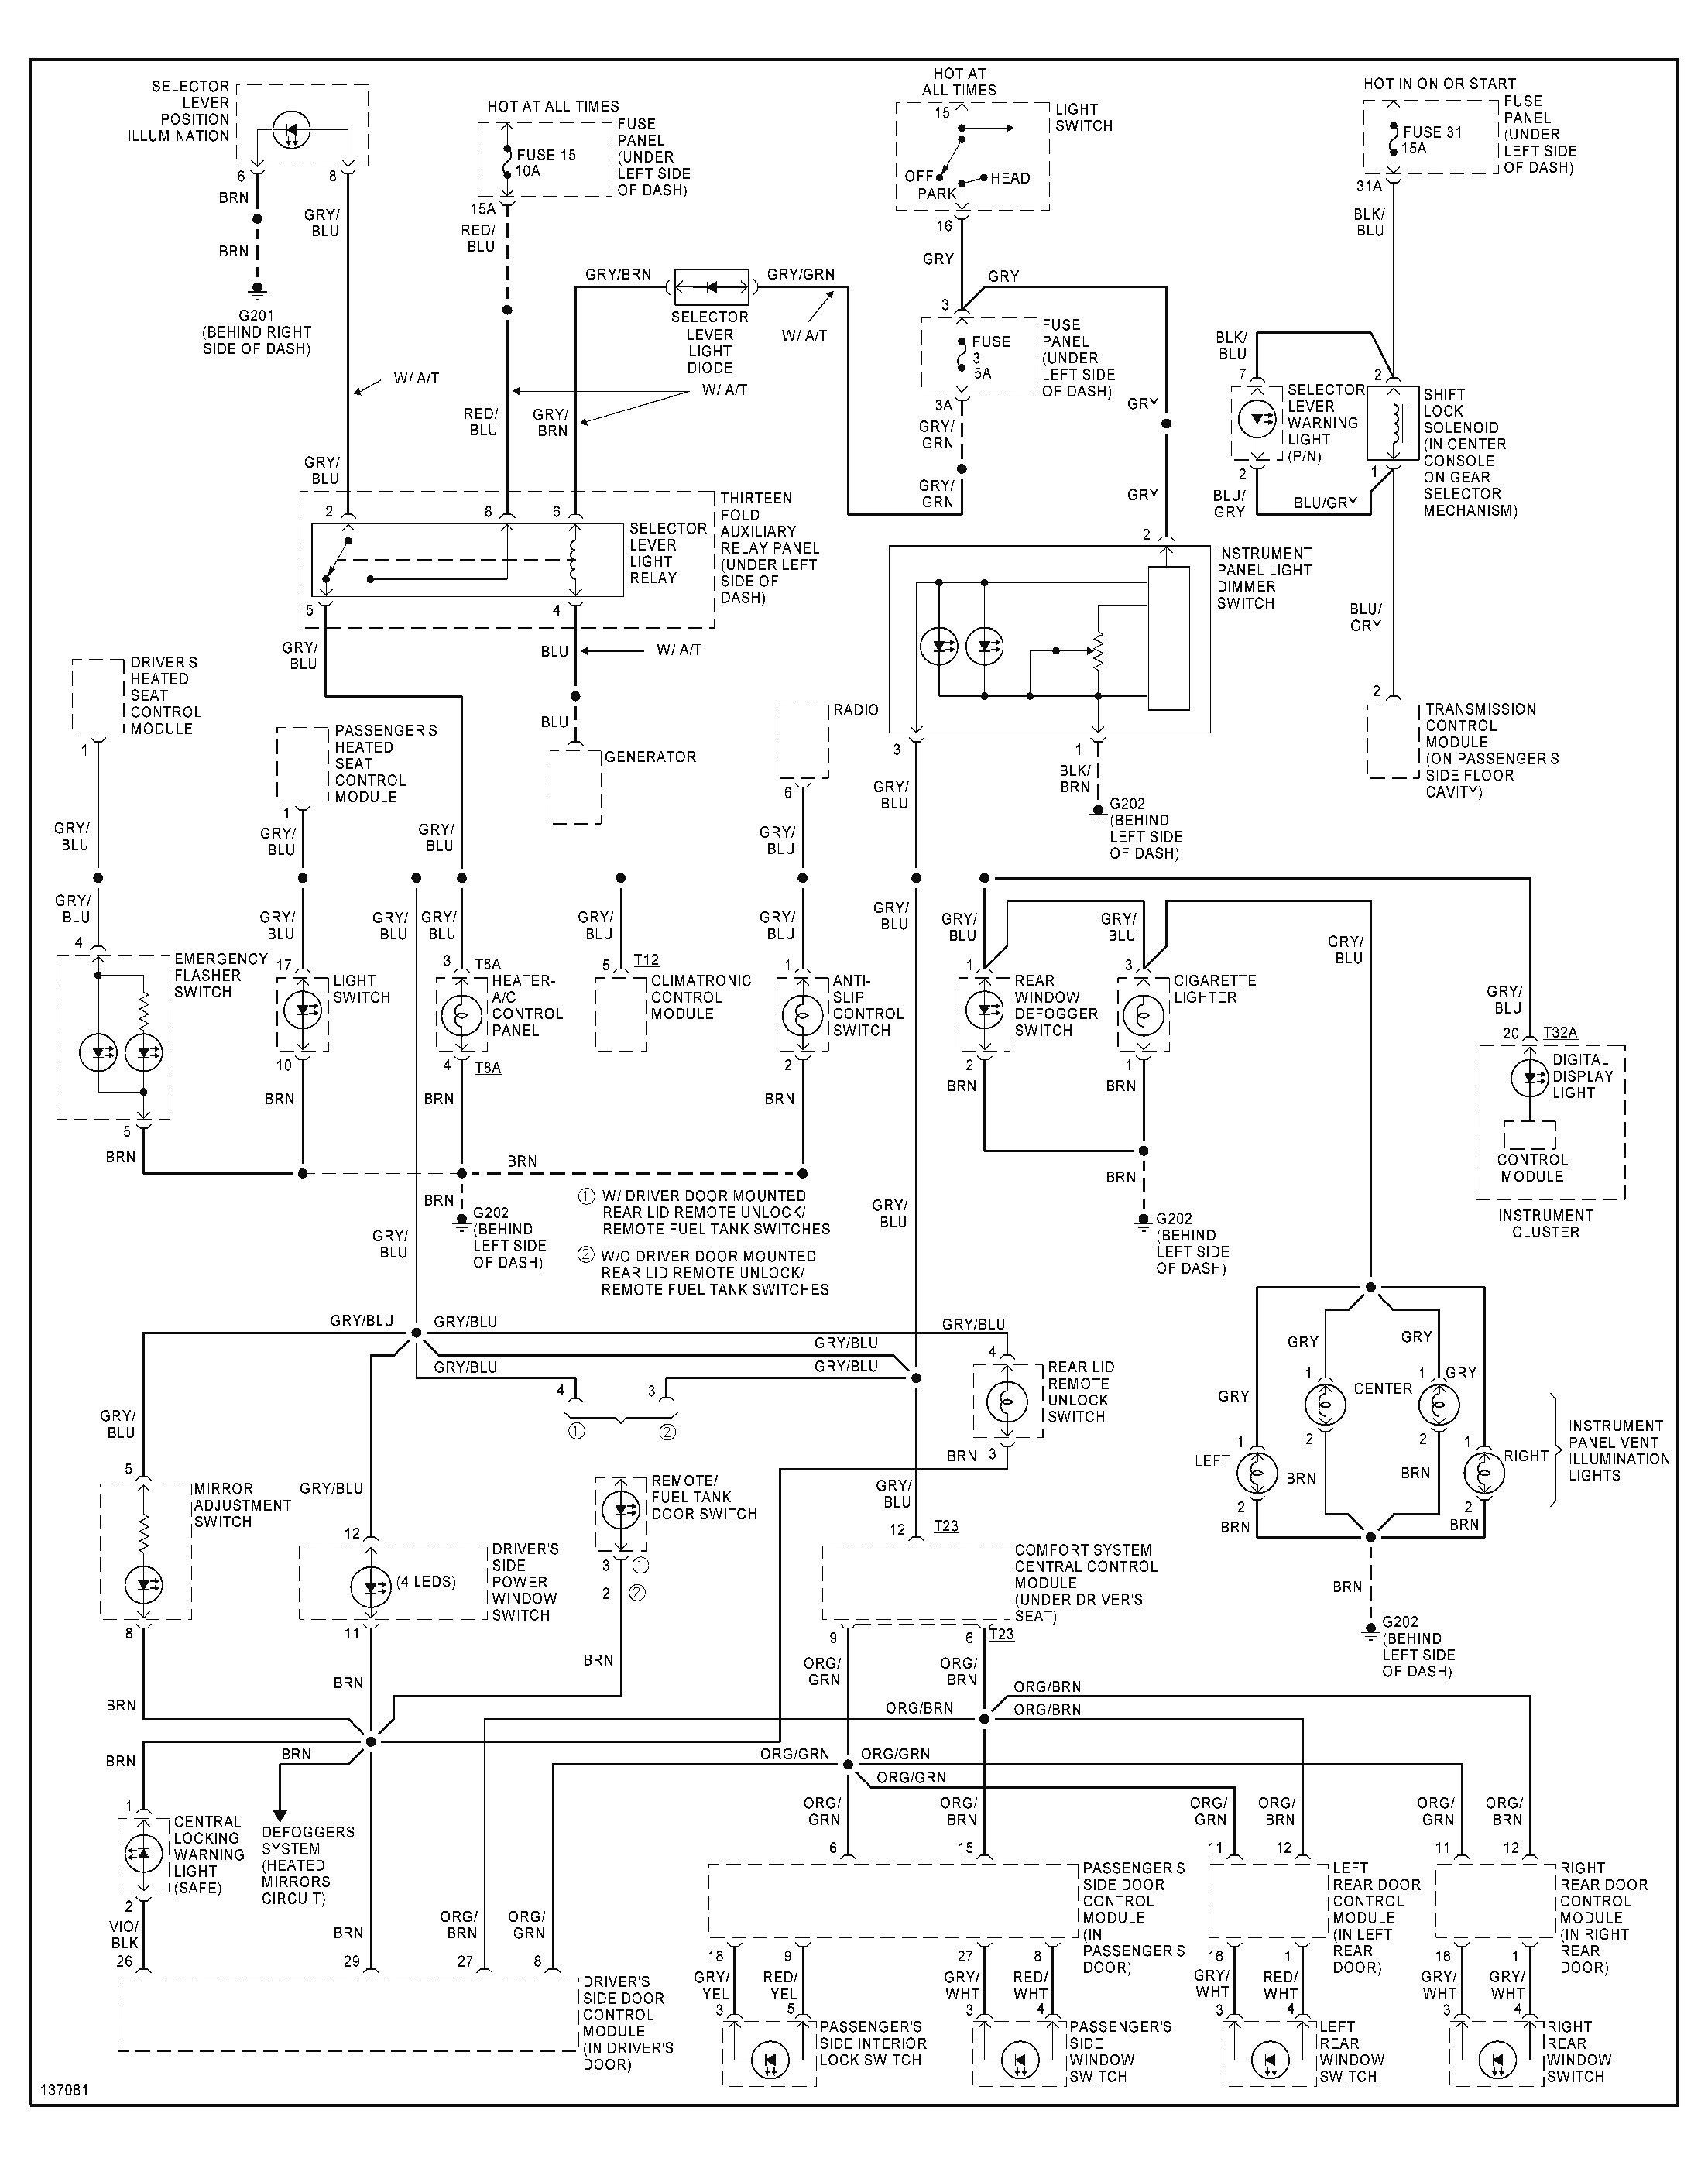 wiring diagram for 2004 dodge intrepid - wiring diagram options free-deck-a  - free-deck-a.studiopyxis.it  pyxis